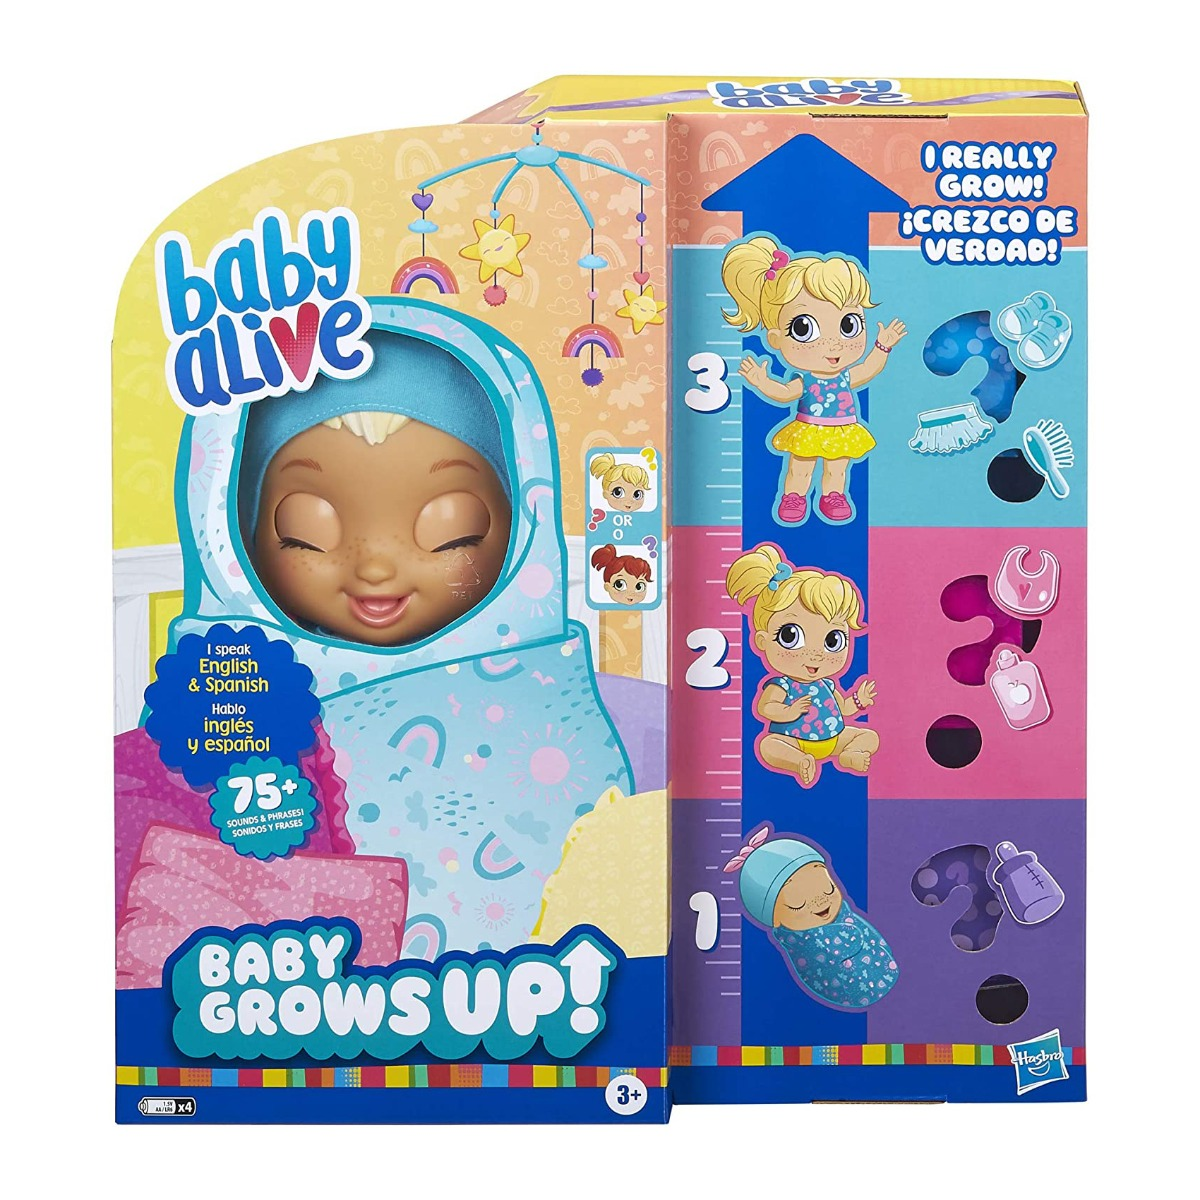 Papusa care creste in timp real Baby Alive, Baby Grows Up